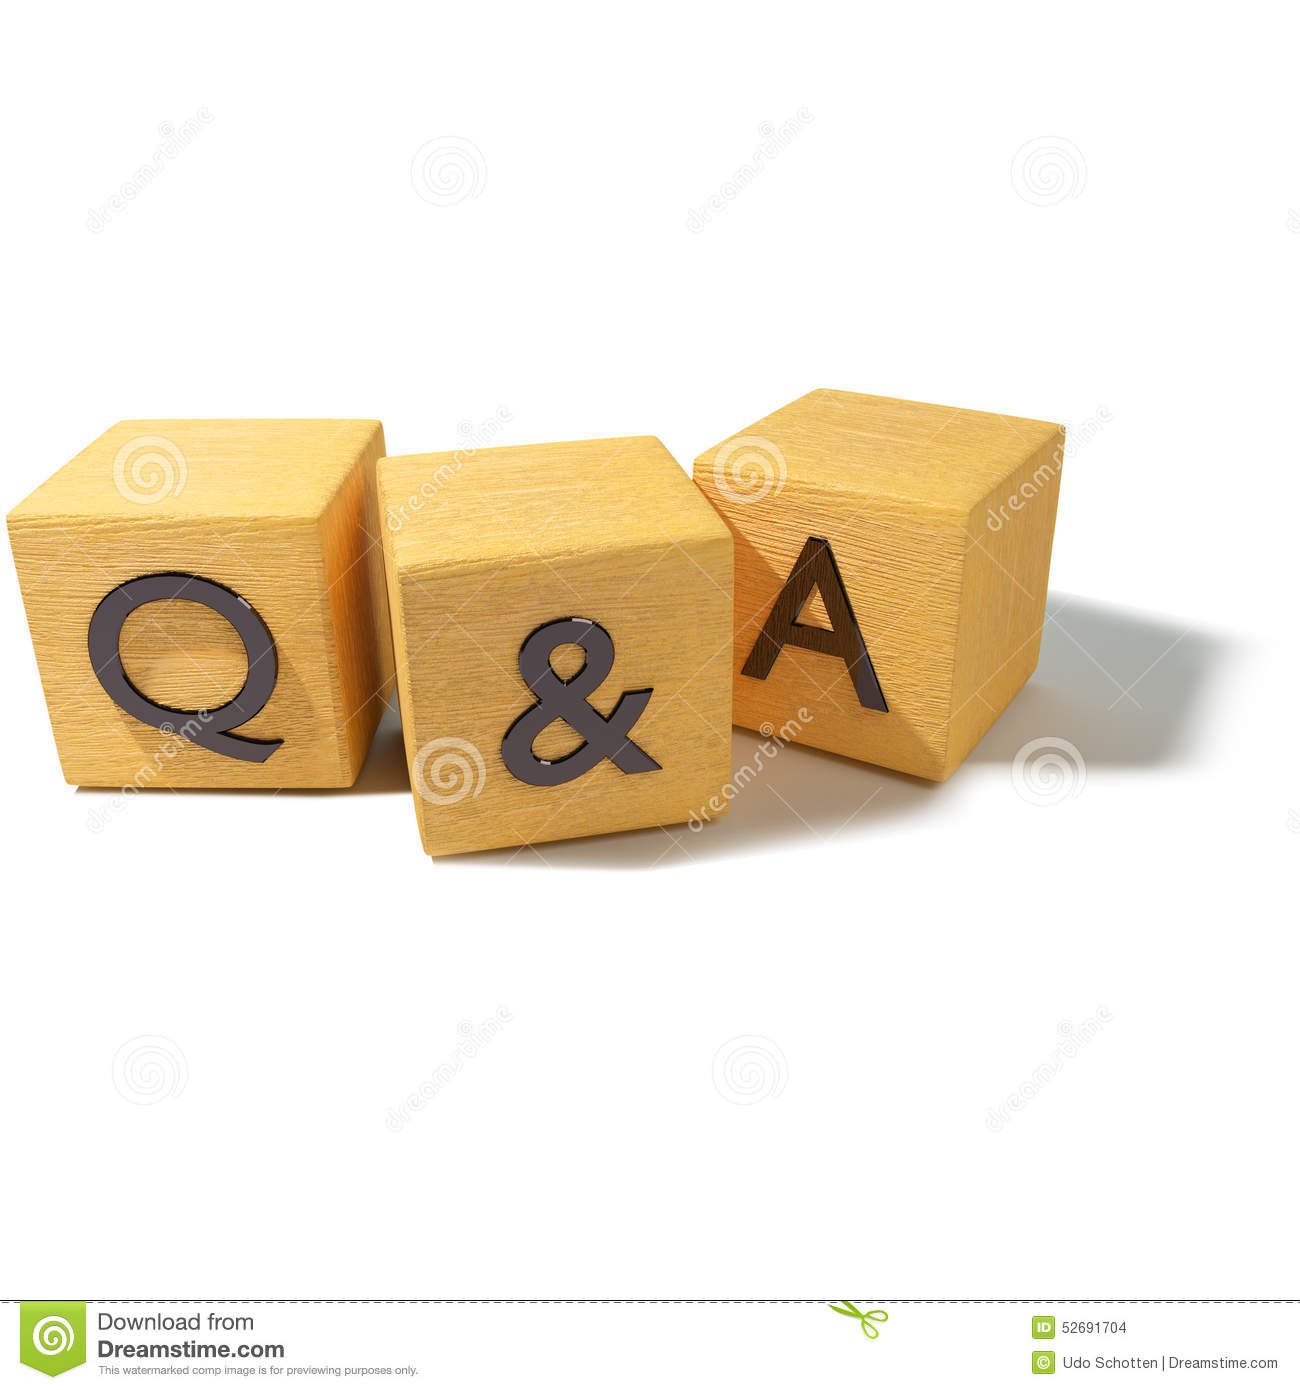 Dice With Questions And Answers Stock Photo - Image of business